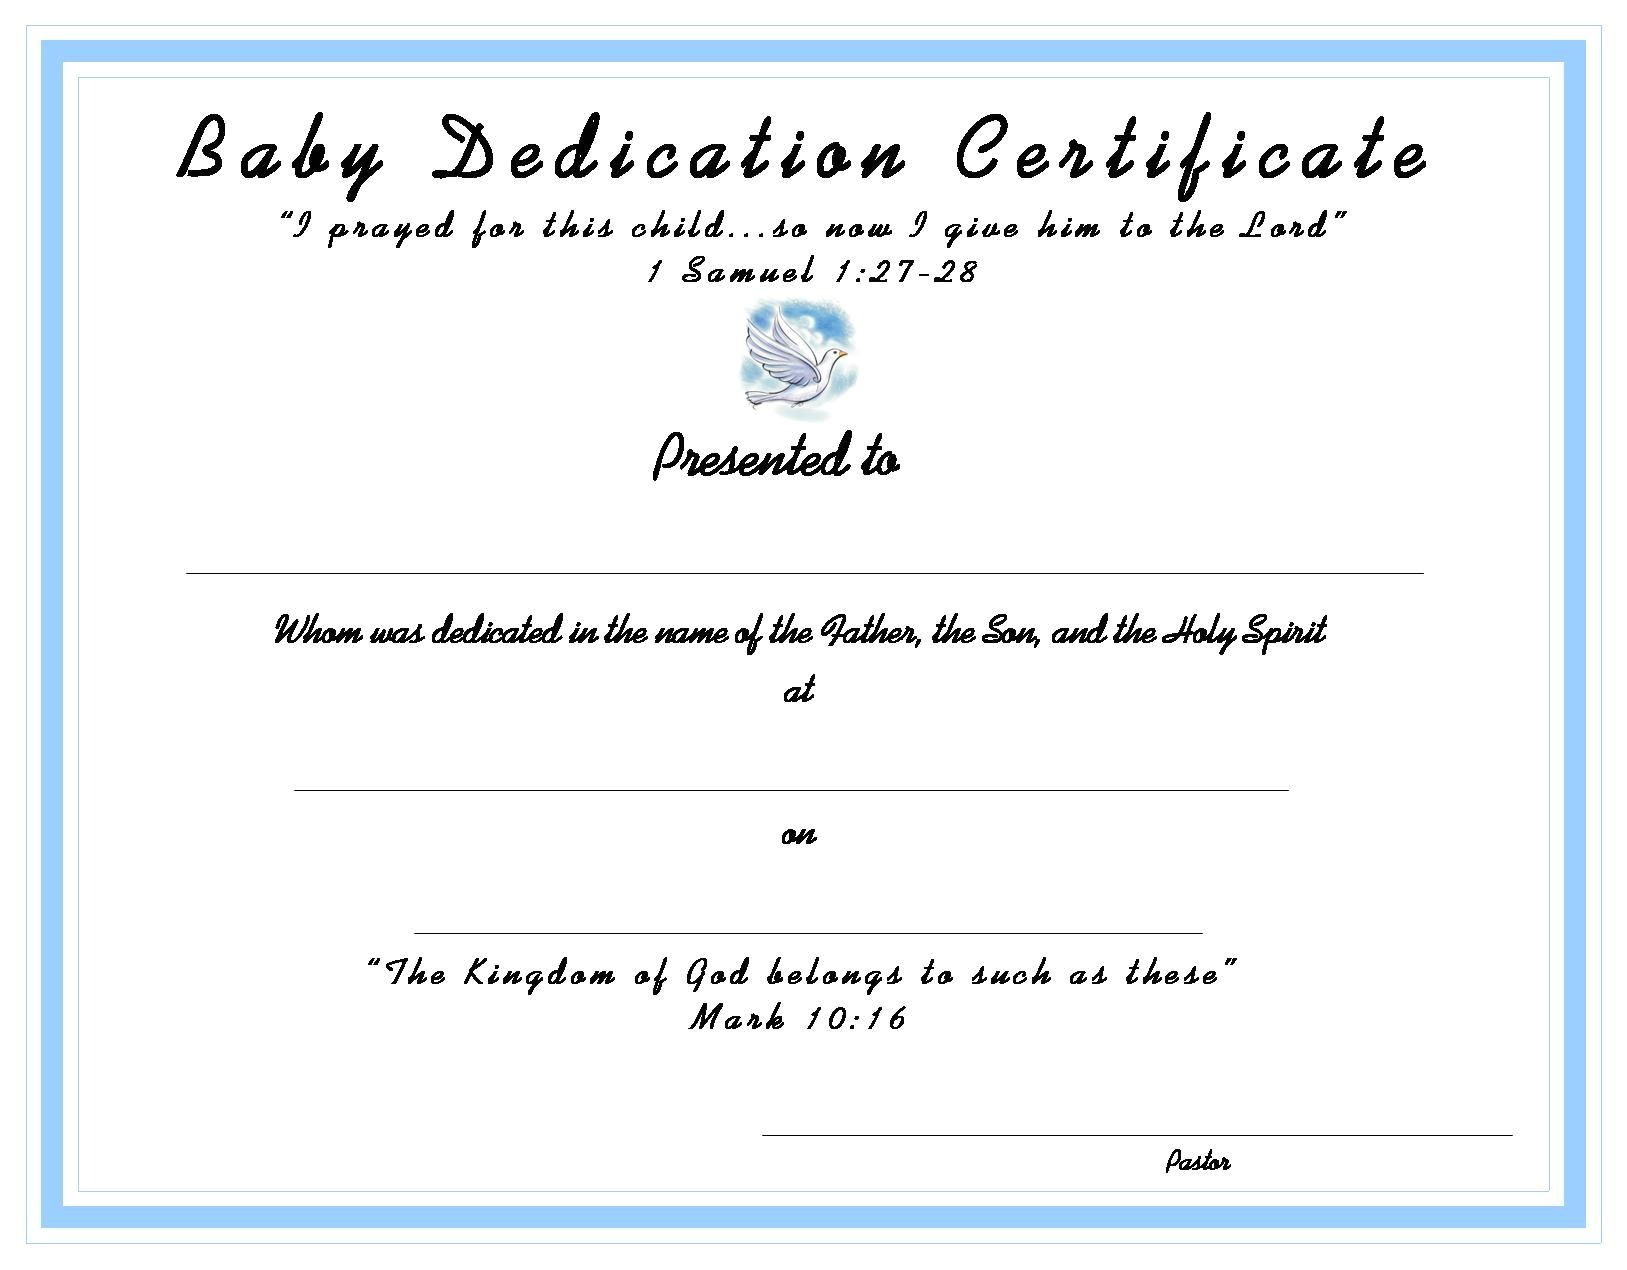 Baby Blessing Certificate Template Www Certificatetemplate org Baby Dedication Certificate